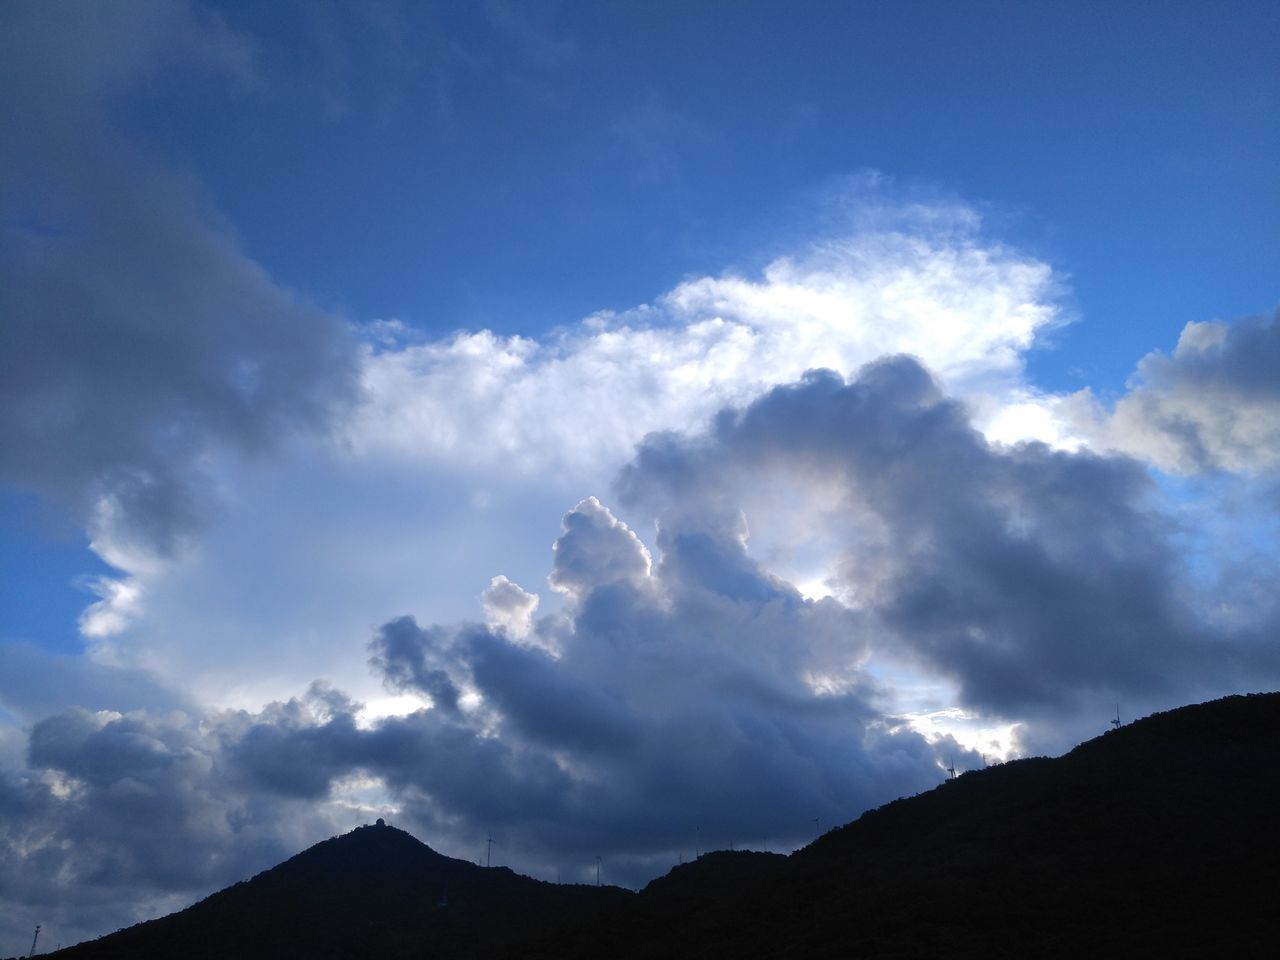 sky, cloud - sky, nature, scenics, low angle view, beauty in nature, tranquility, silhouette, tranquil scene, blue, outdoors, no people, day, mountain